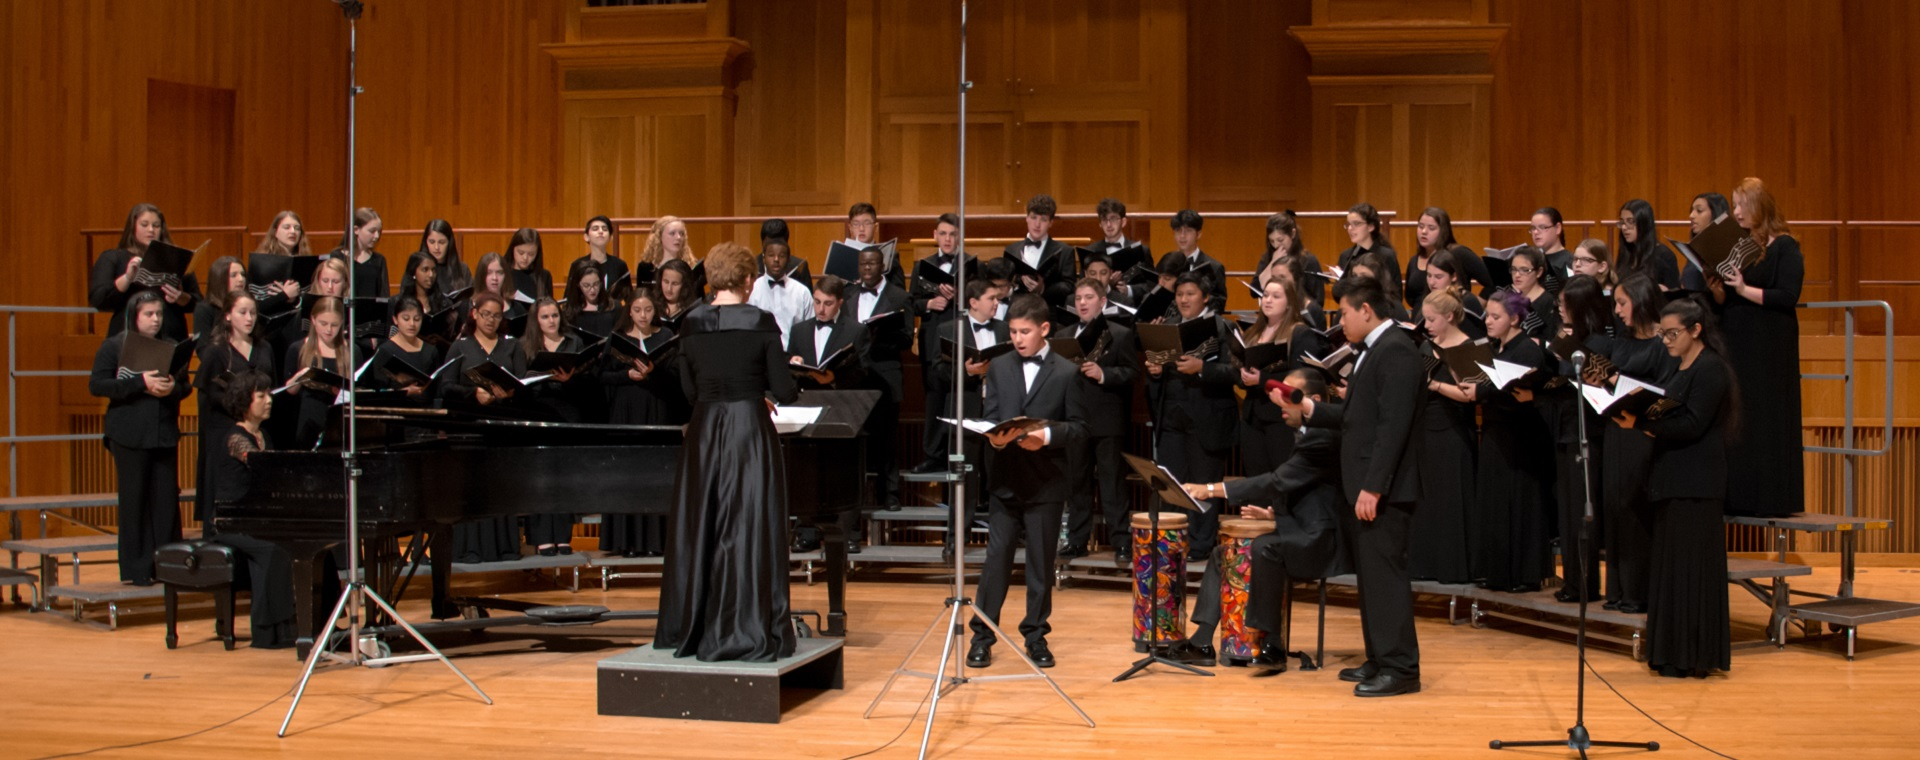 8.-Nassau-Symphonic-Choir